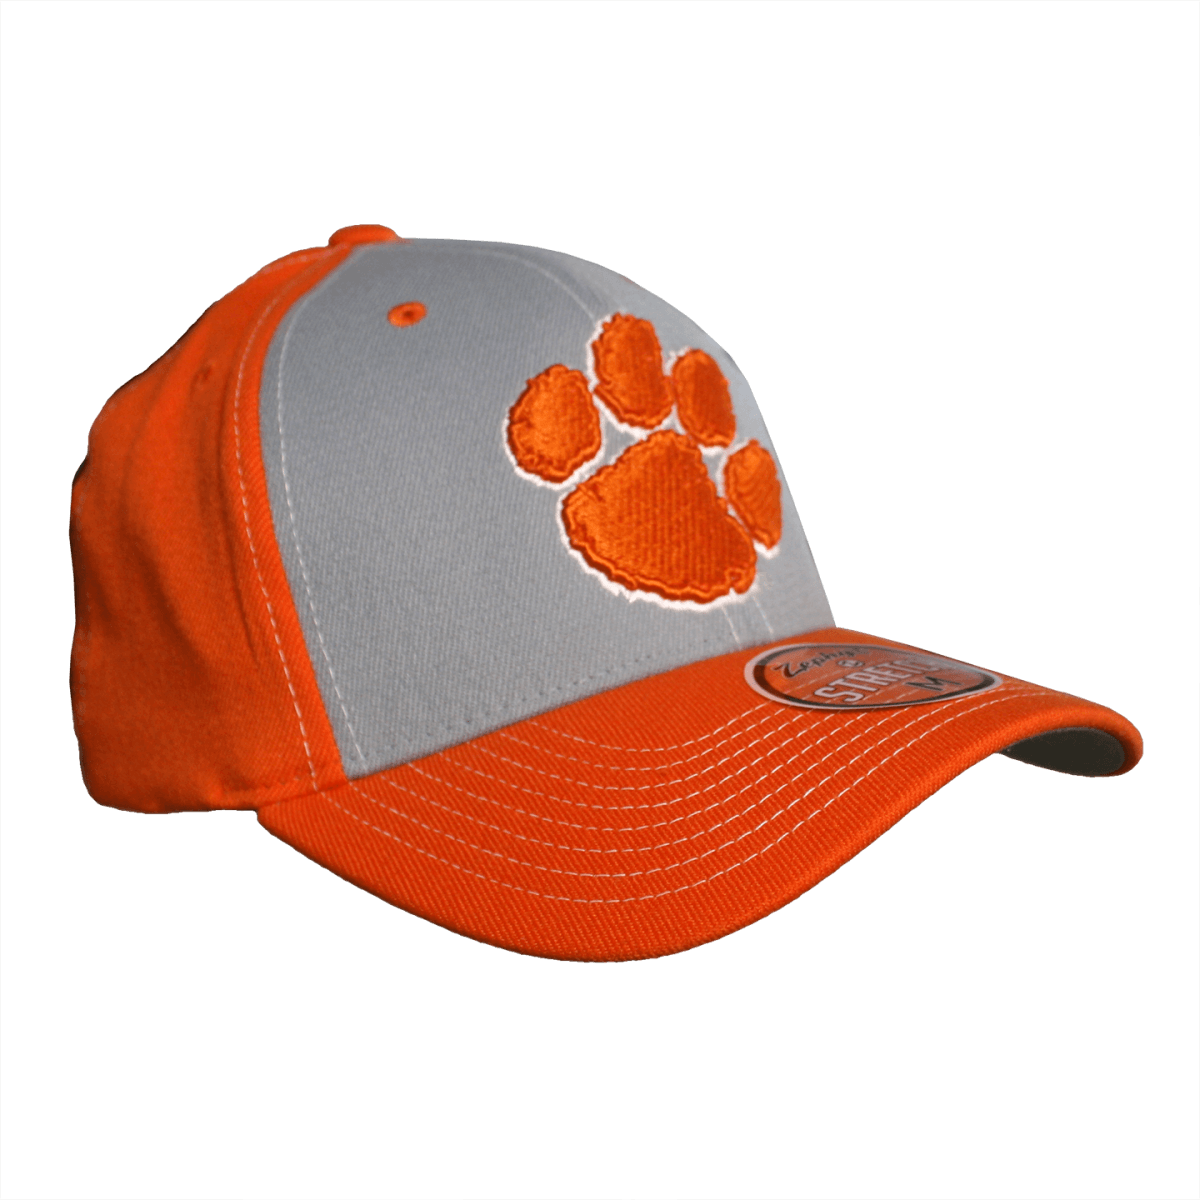 Zephyr Sediment Orange hat with 3D paw and Clemson on back - Mr. Knickerbocker